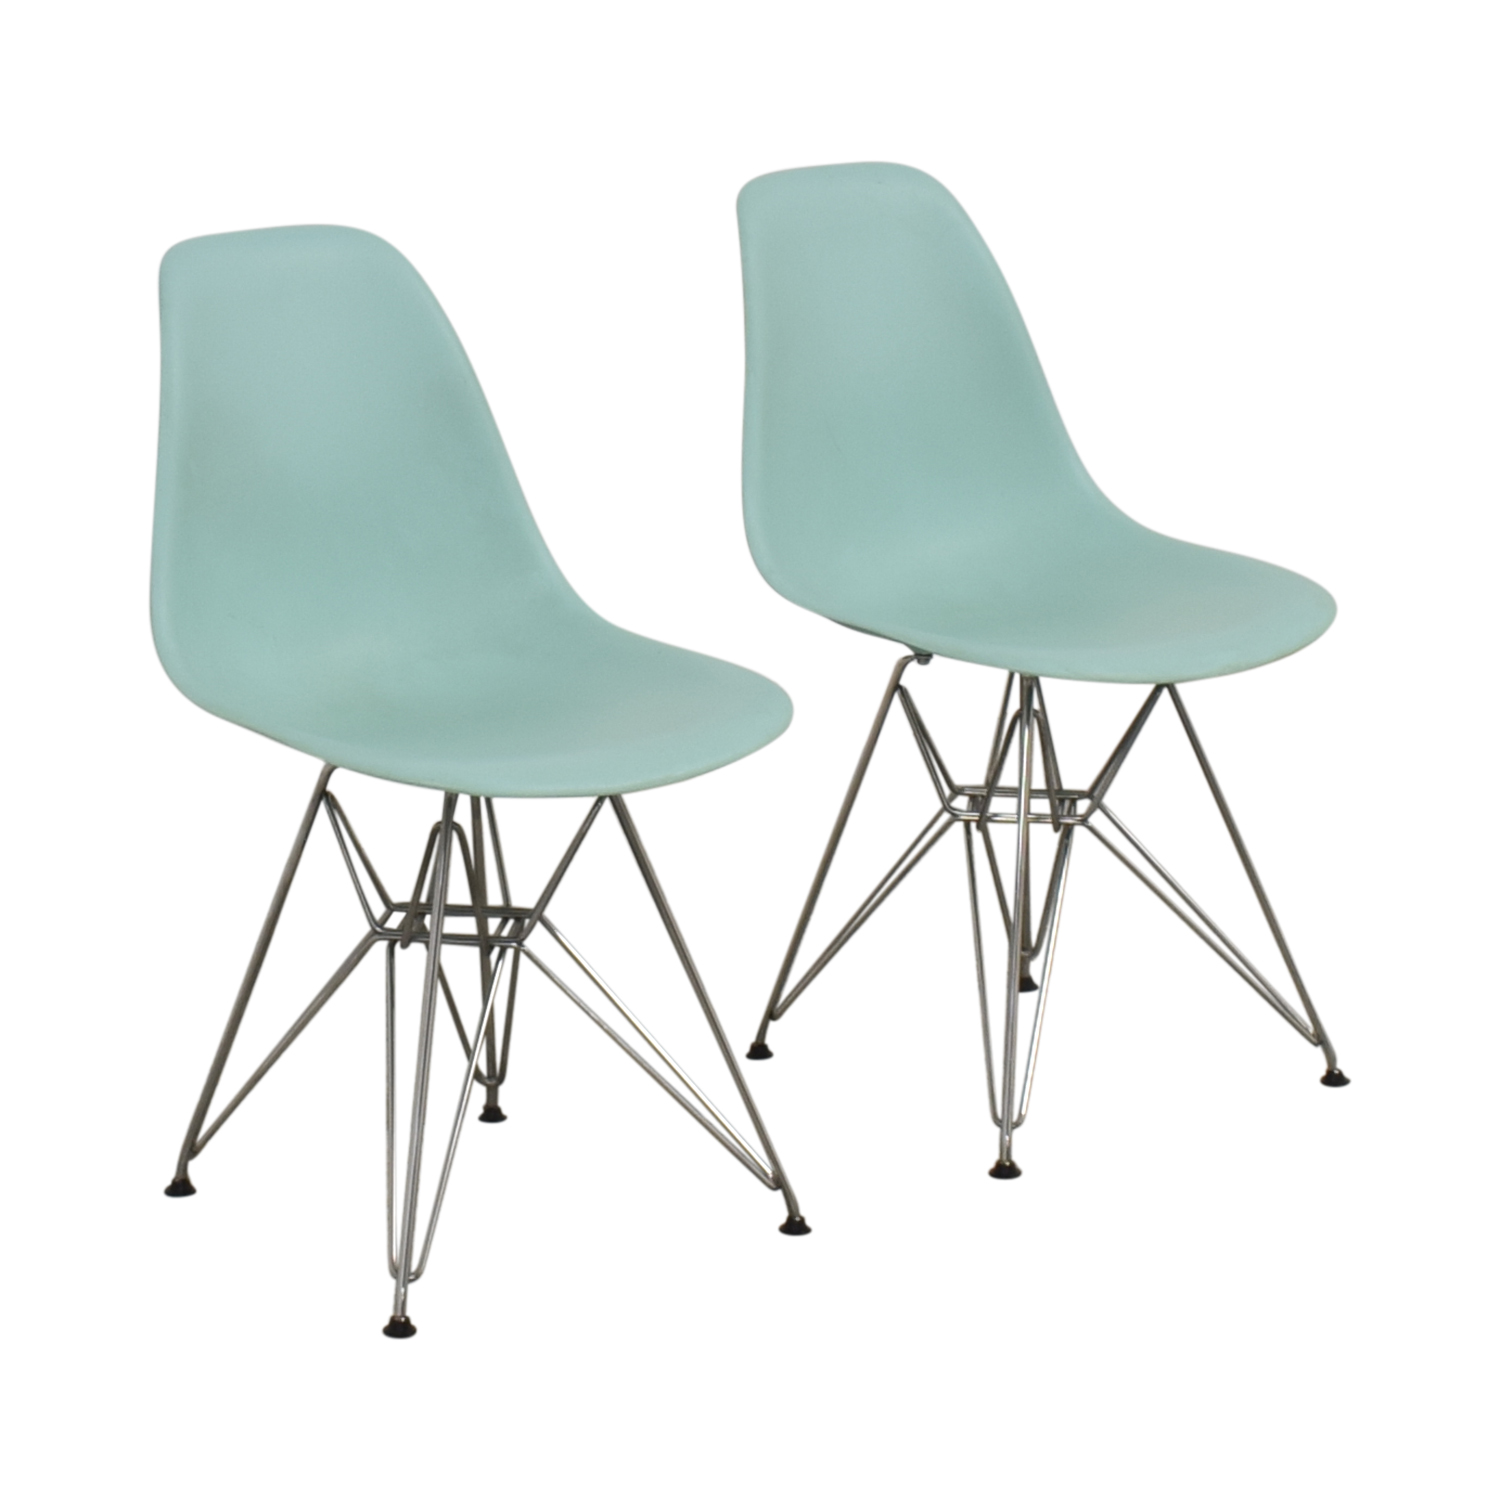 Herman Miller Herman Miller Eames Molded Plastic Side Chair with Wire Base coupon